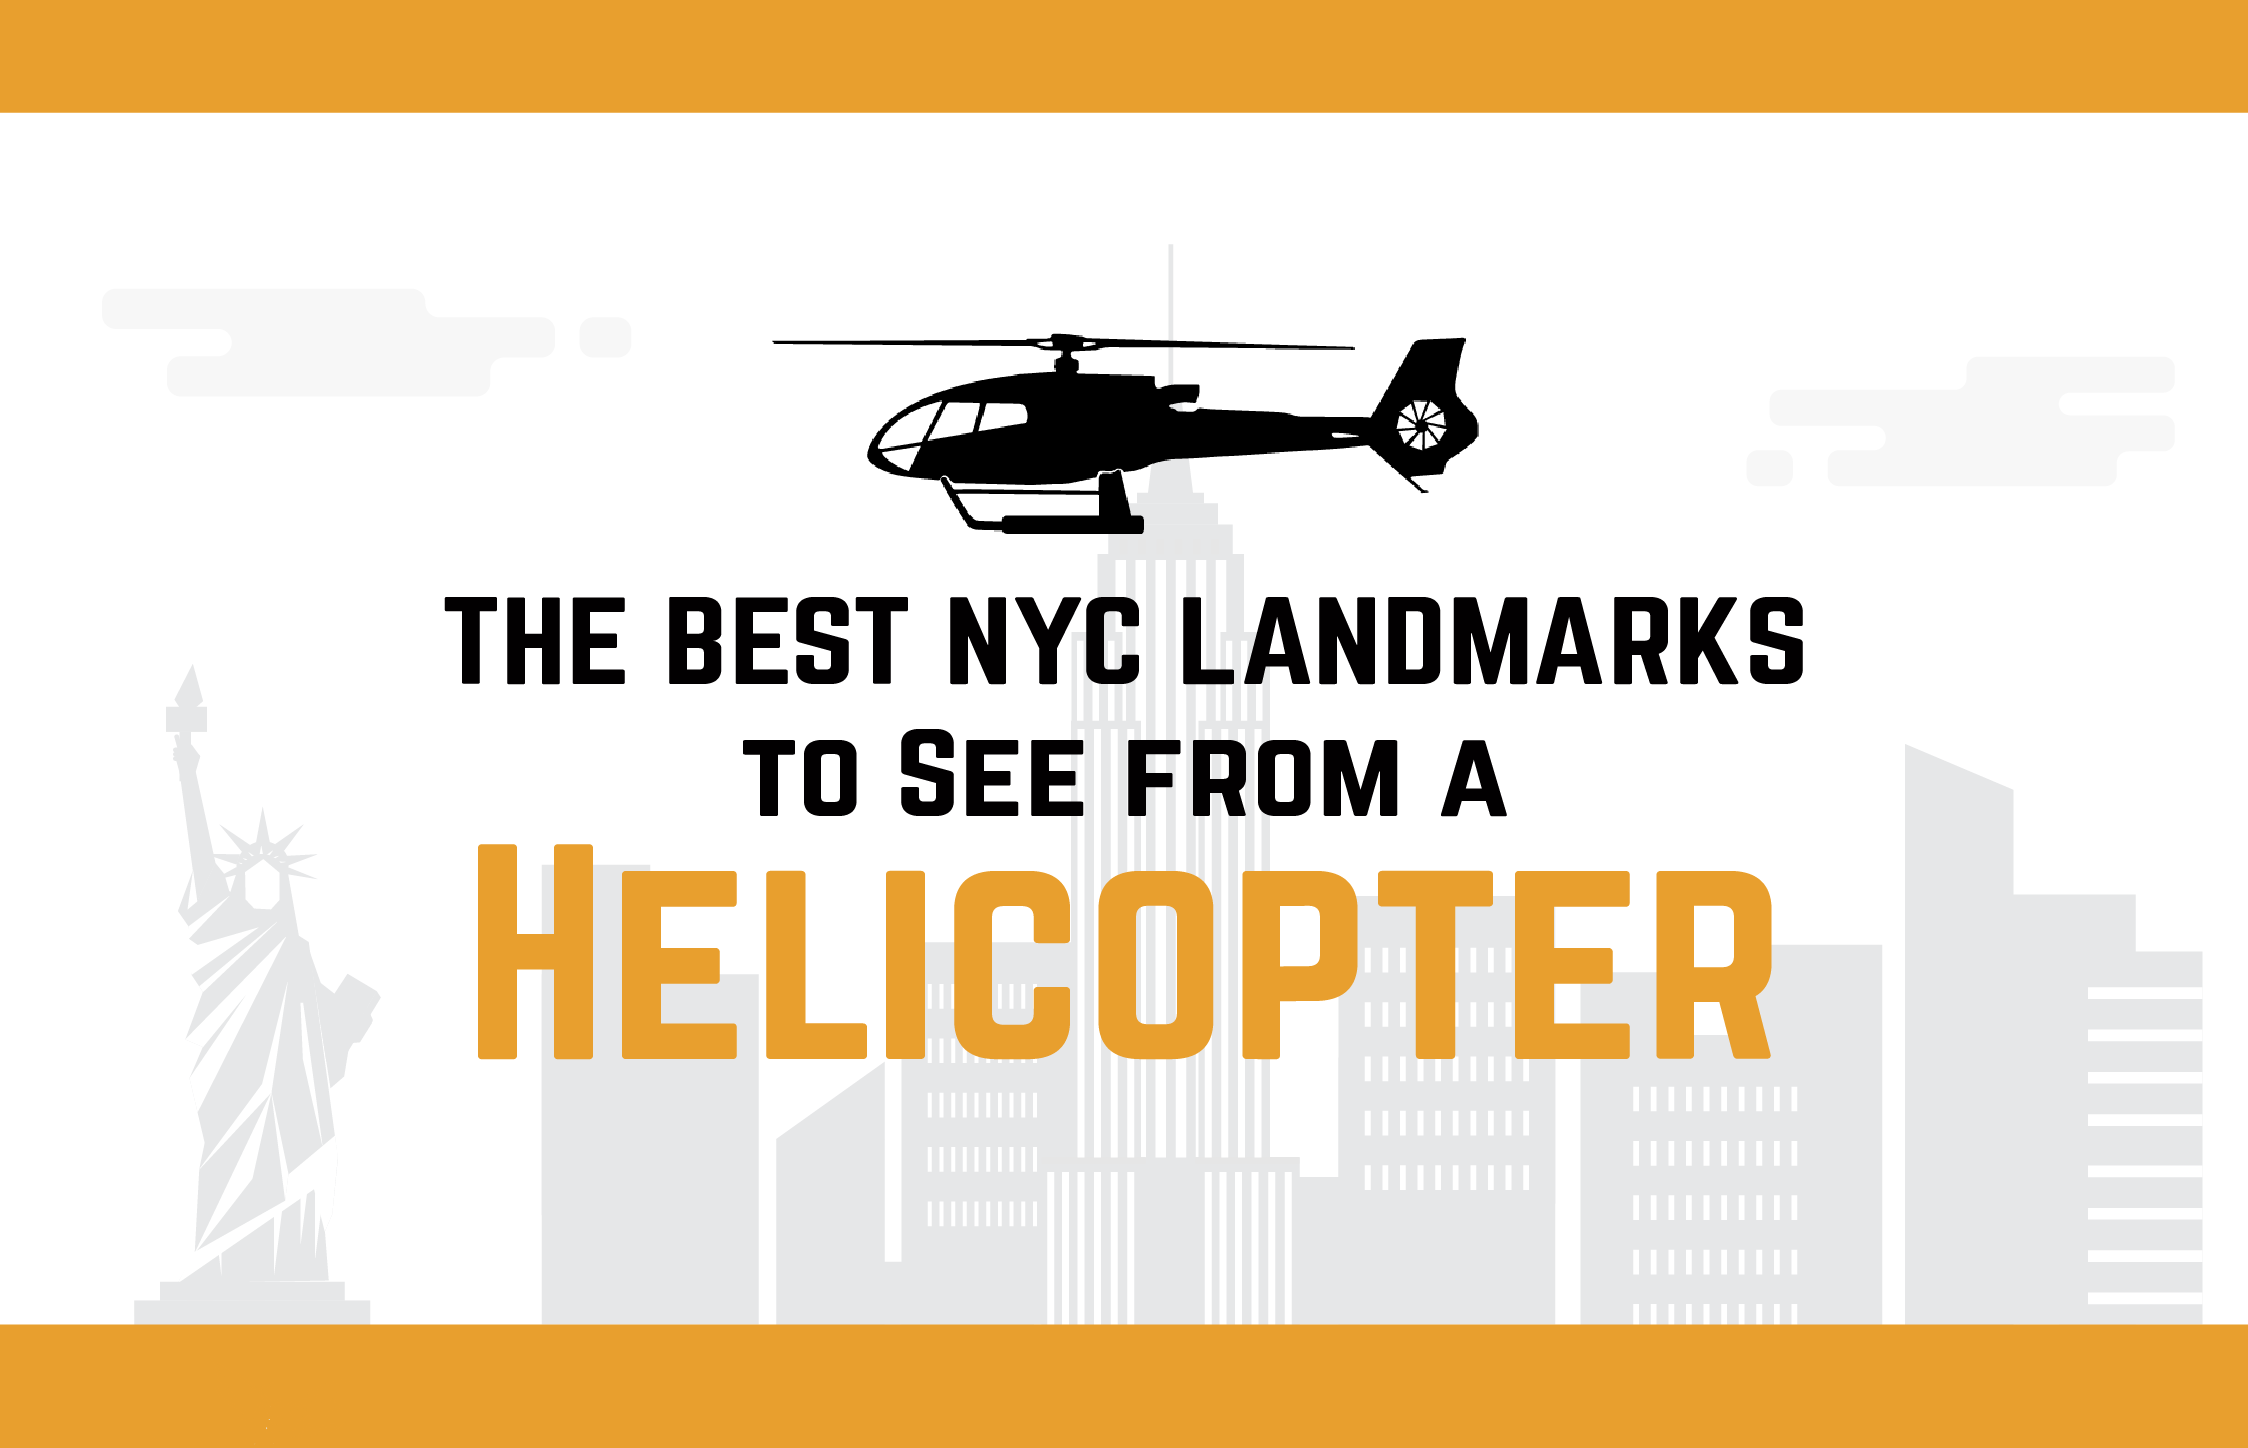 The Best NYC Landmarks to See from a Helicopter